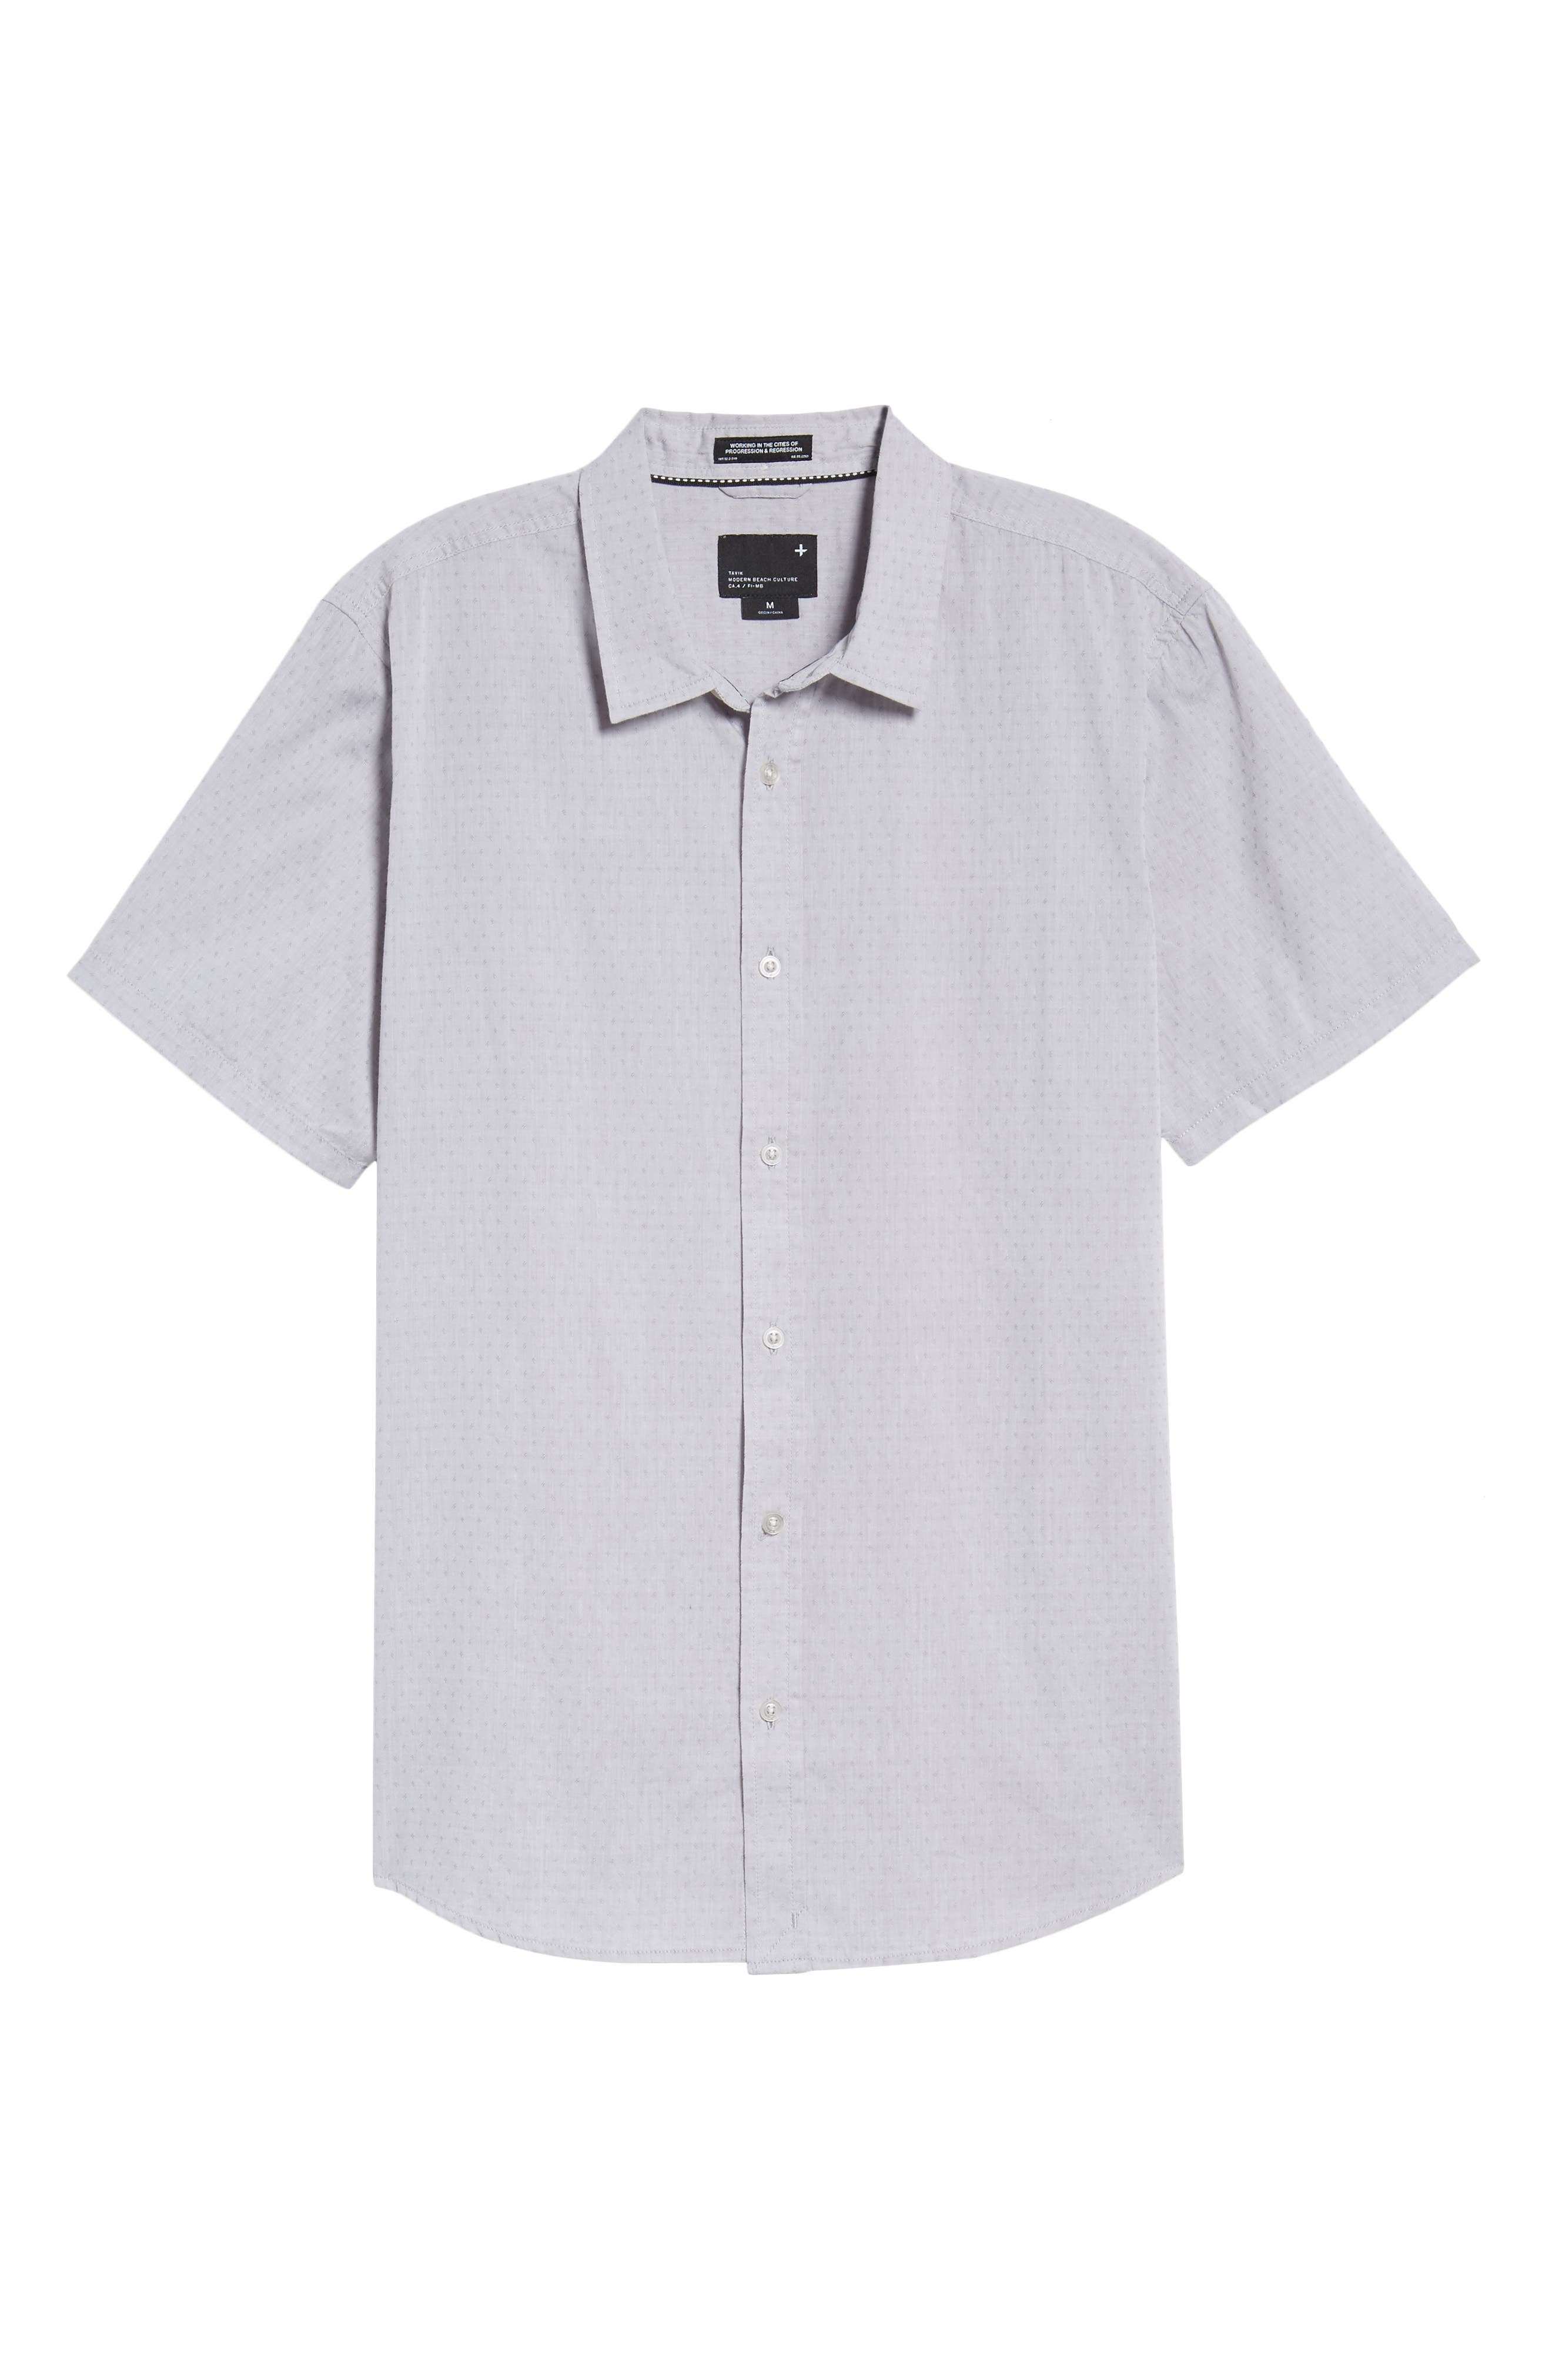 Clarke Woven Shirt,                             Alternate thumbnail 9, color,